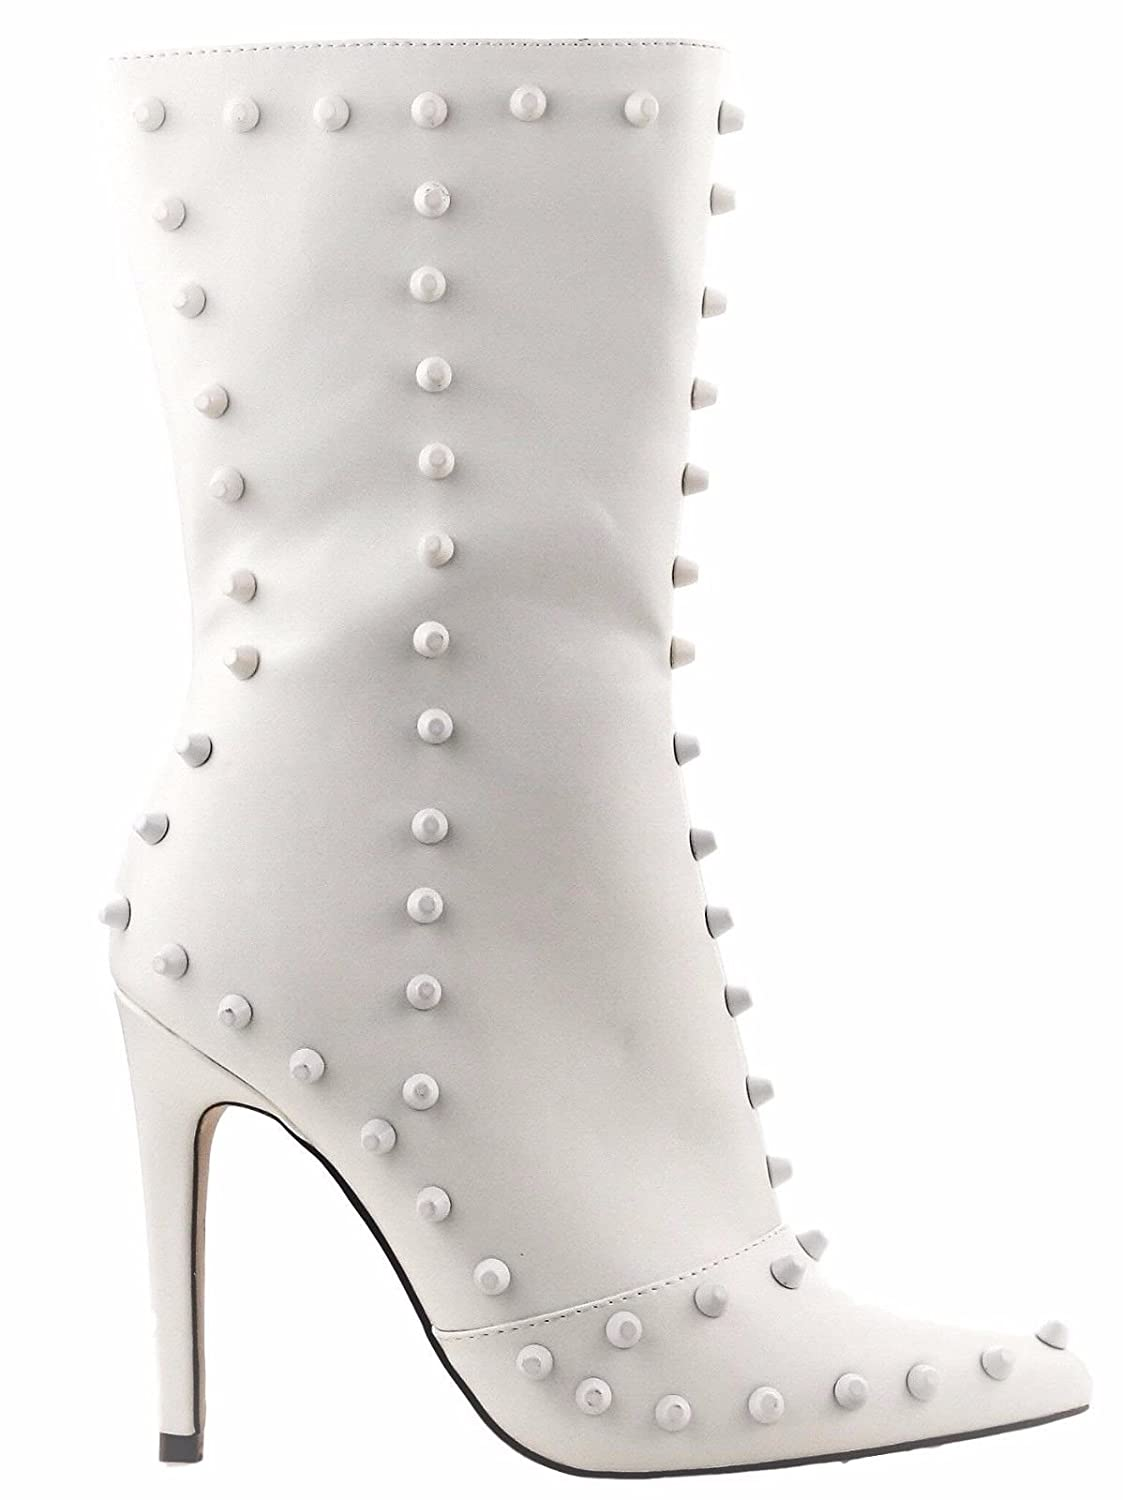 1cbfb0fca1f CAPE ROBBIN Gigi-162 Women's Ankle Boots High Mid Heels Pointed Toe Spike  Studs Stiletto White